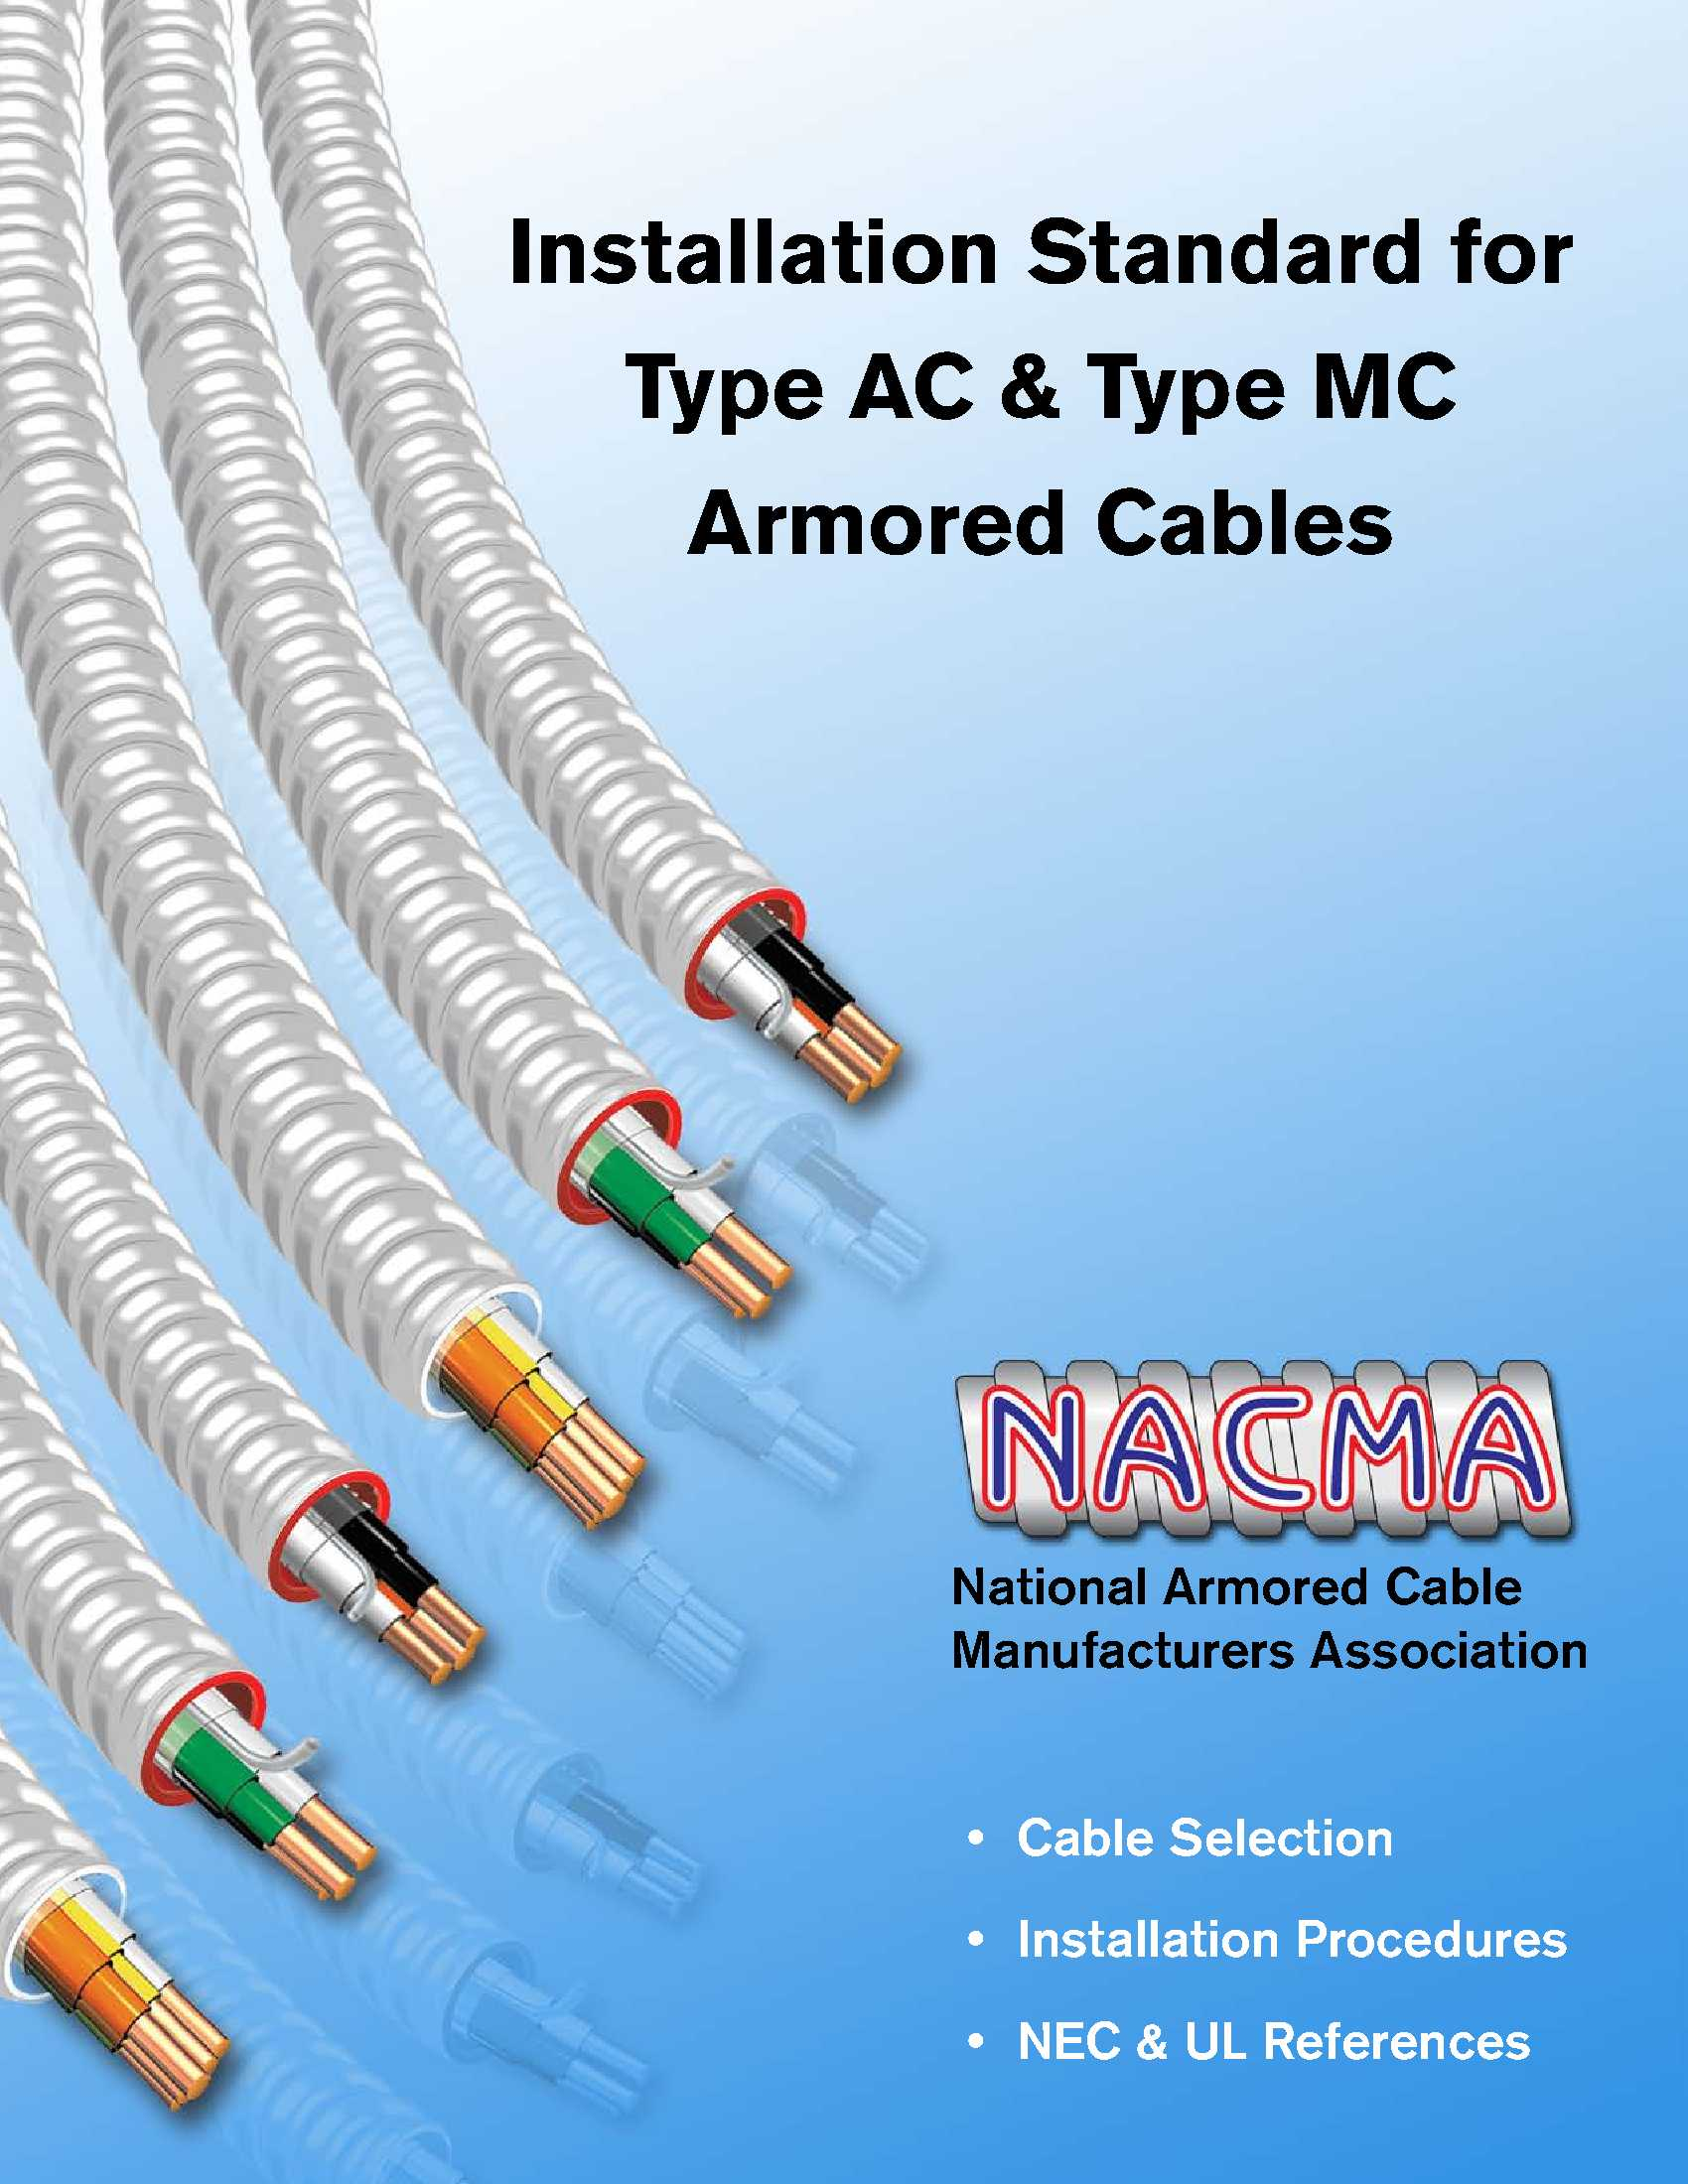 Installation Standard — NACMA on armored cable plugs, heat cable wiring, armored flexible conduit, armored clad cable, telephone cable wiring, armored control cable, armored power cable, armored cable hoses, armored ethernet cable, coaxial cable wiring, armored cable box to outlet, armored cable connectors, armored cable lights, armored fiber cable specifications, audio cable wiring, armored electric cable, armored cable grounding, phone cable wiring, bx cable wiring, armored cable product,